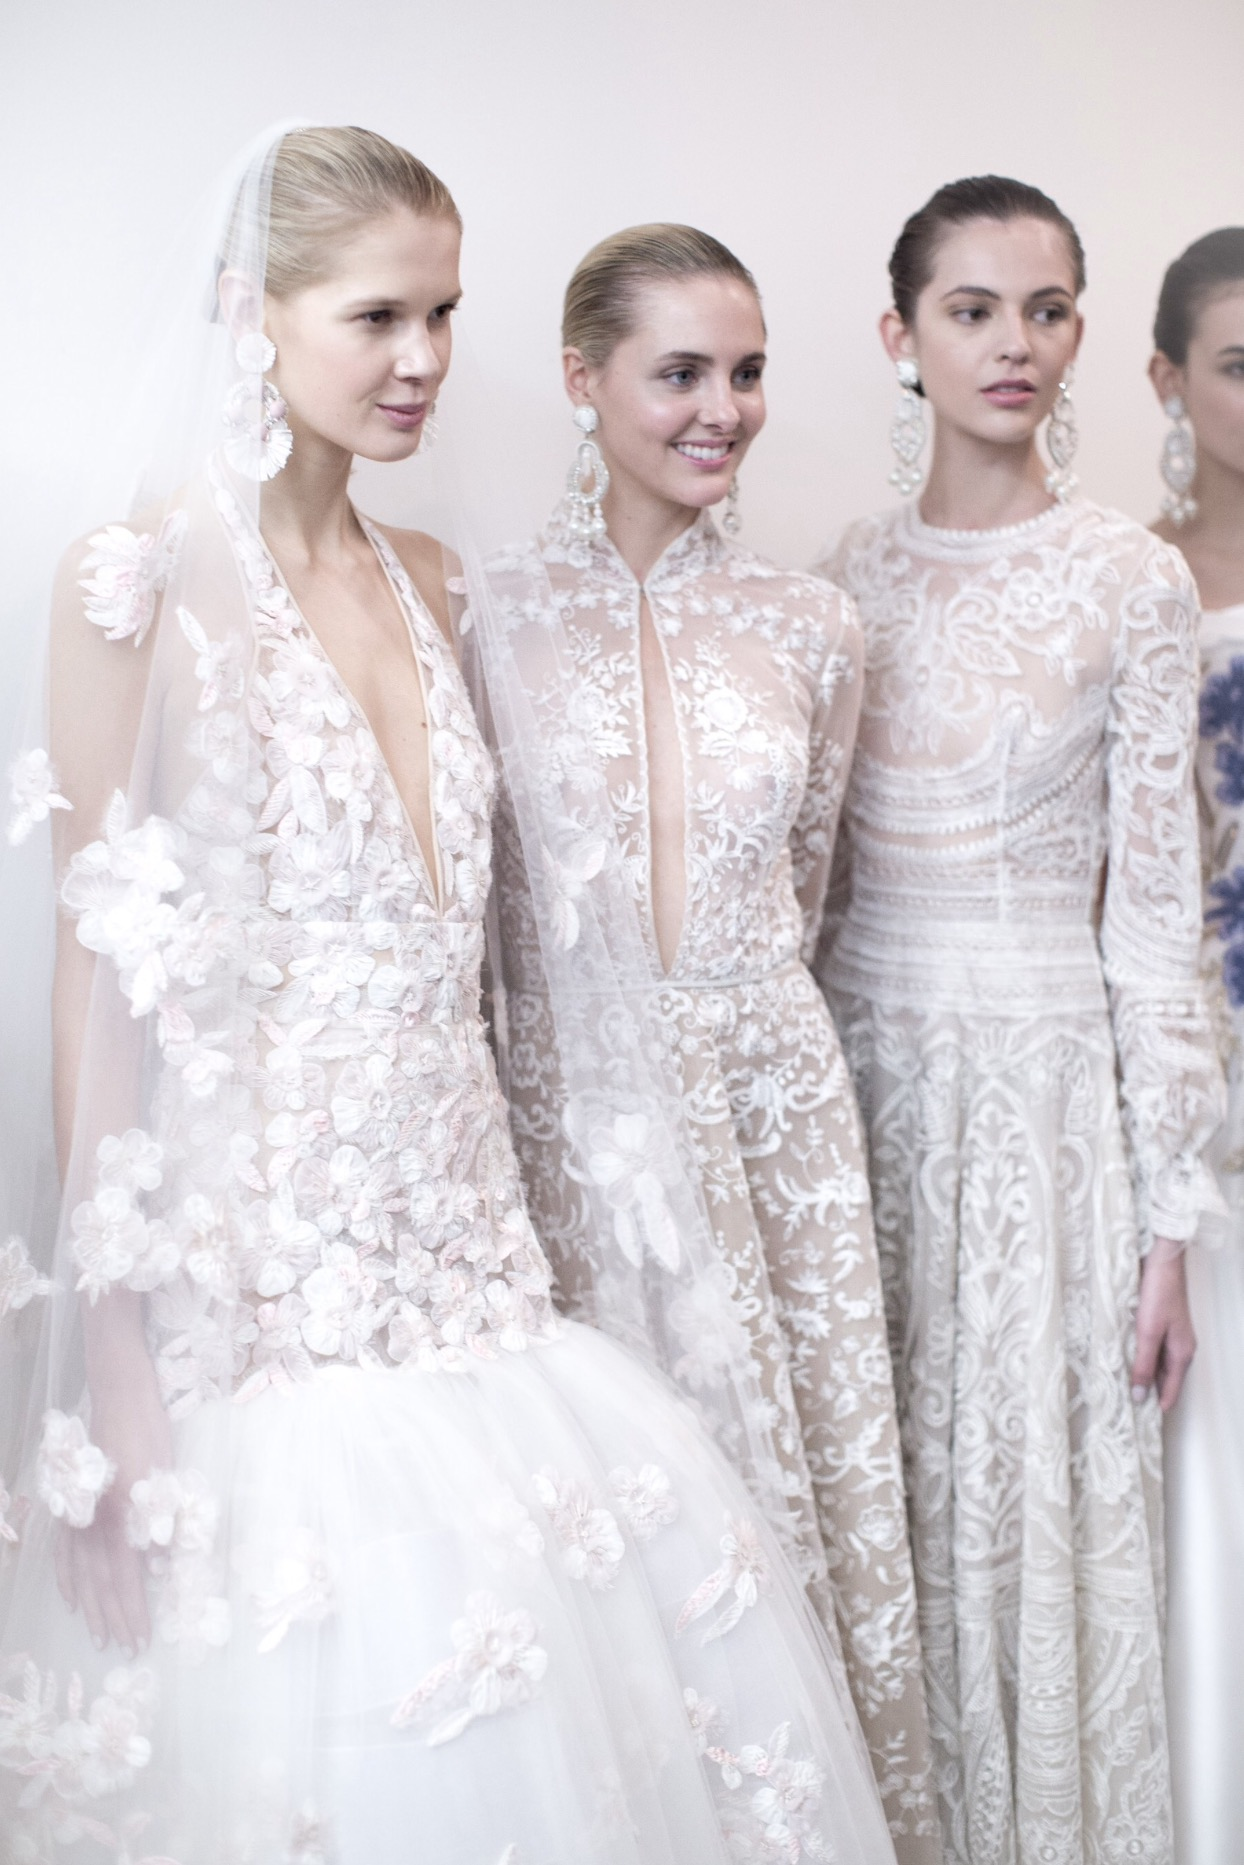 High-end, handmade wedding gowns by Naeem Khan available at Little White Dress Bridal Shop in Denver, Colorado.